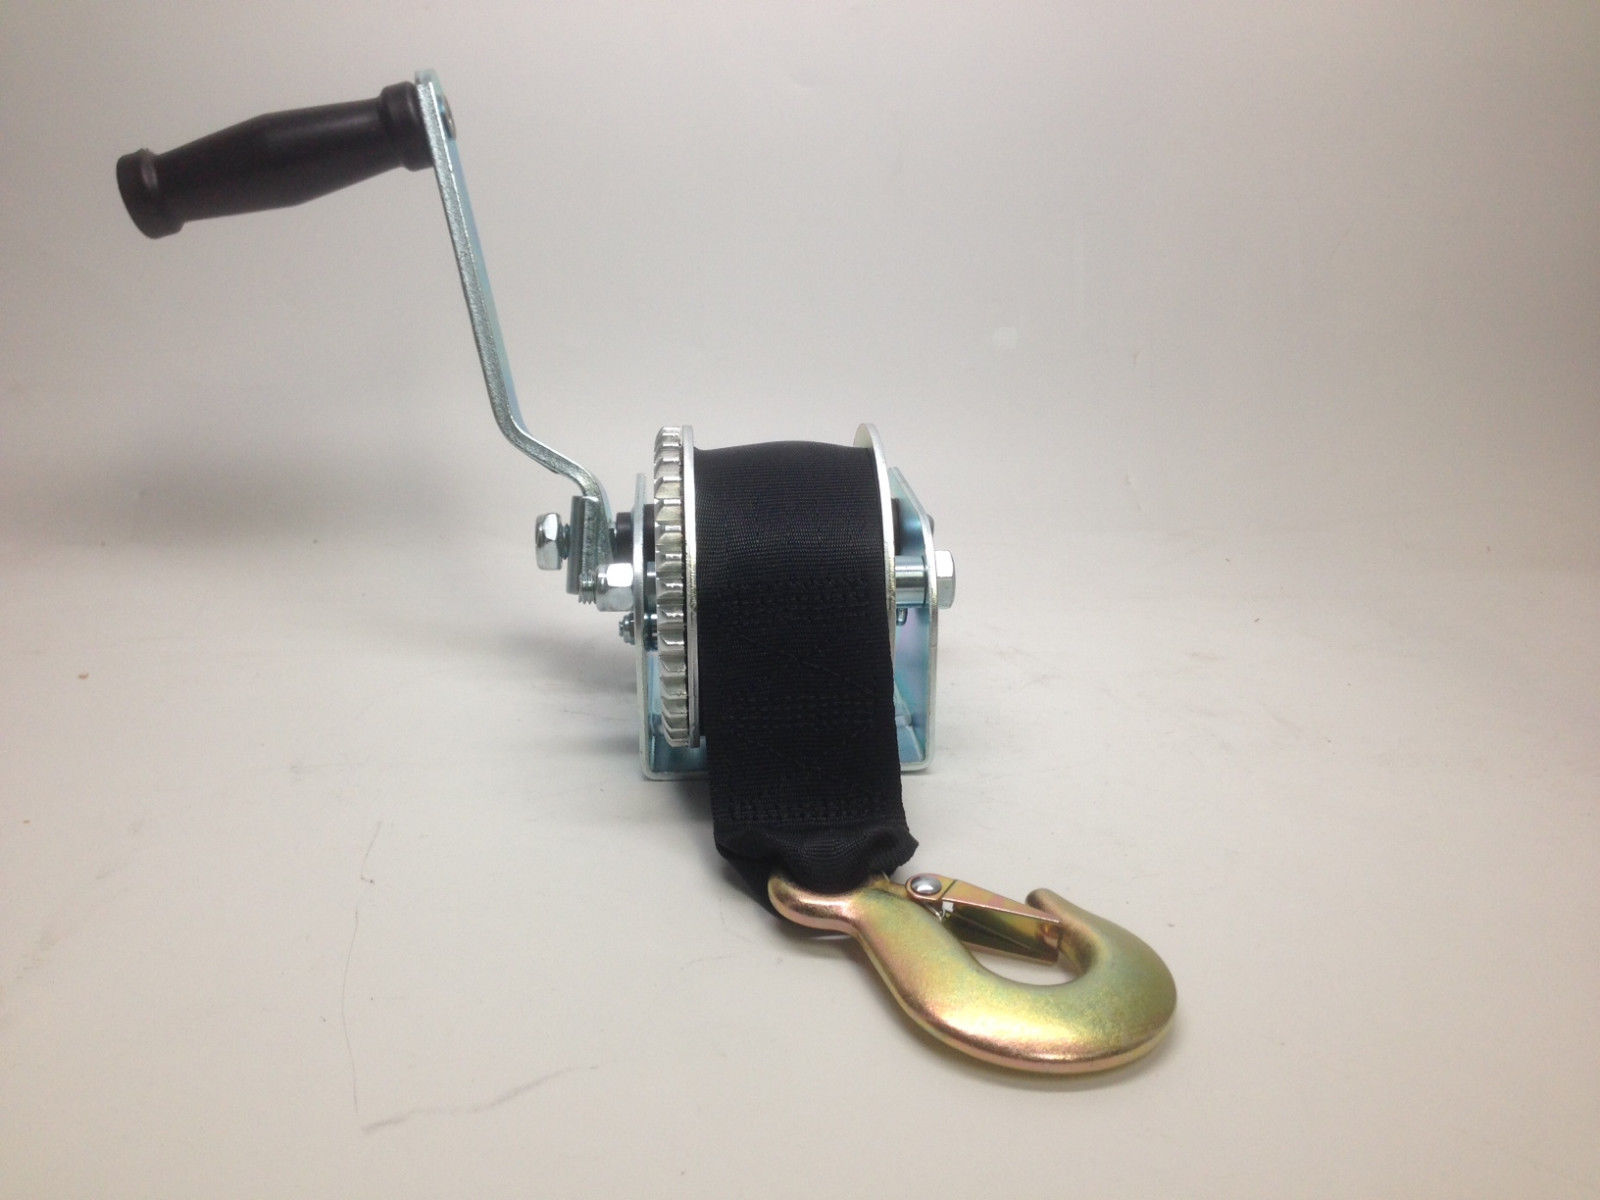 MARINE BOAT TRAILER WINCH WITH NYLON BELT 800 LBS MAX LOAD ZINC